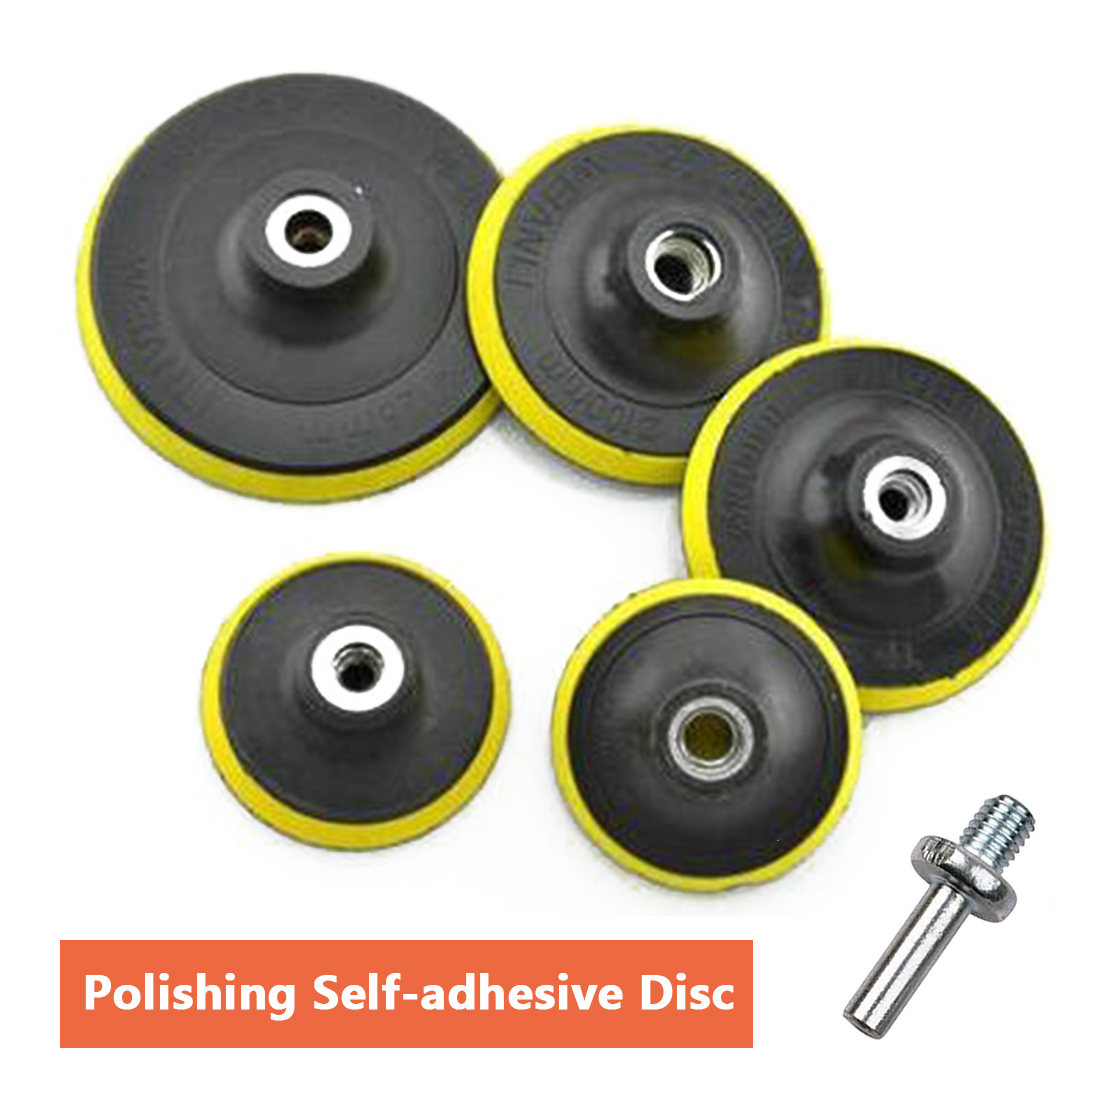 Polishing Disc Suction Cup Self-adhesive Sticky disk 3/4/5/6/7 Sandpaper Sucker Polishing Disc For Electric Grinder Polish polishing pad with self adhesive 175mm 7 thread m14 sanding disc polish pad for electric angle grinder polisher